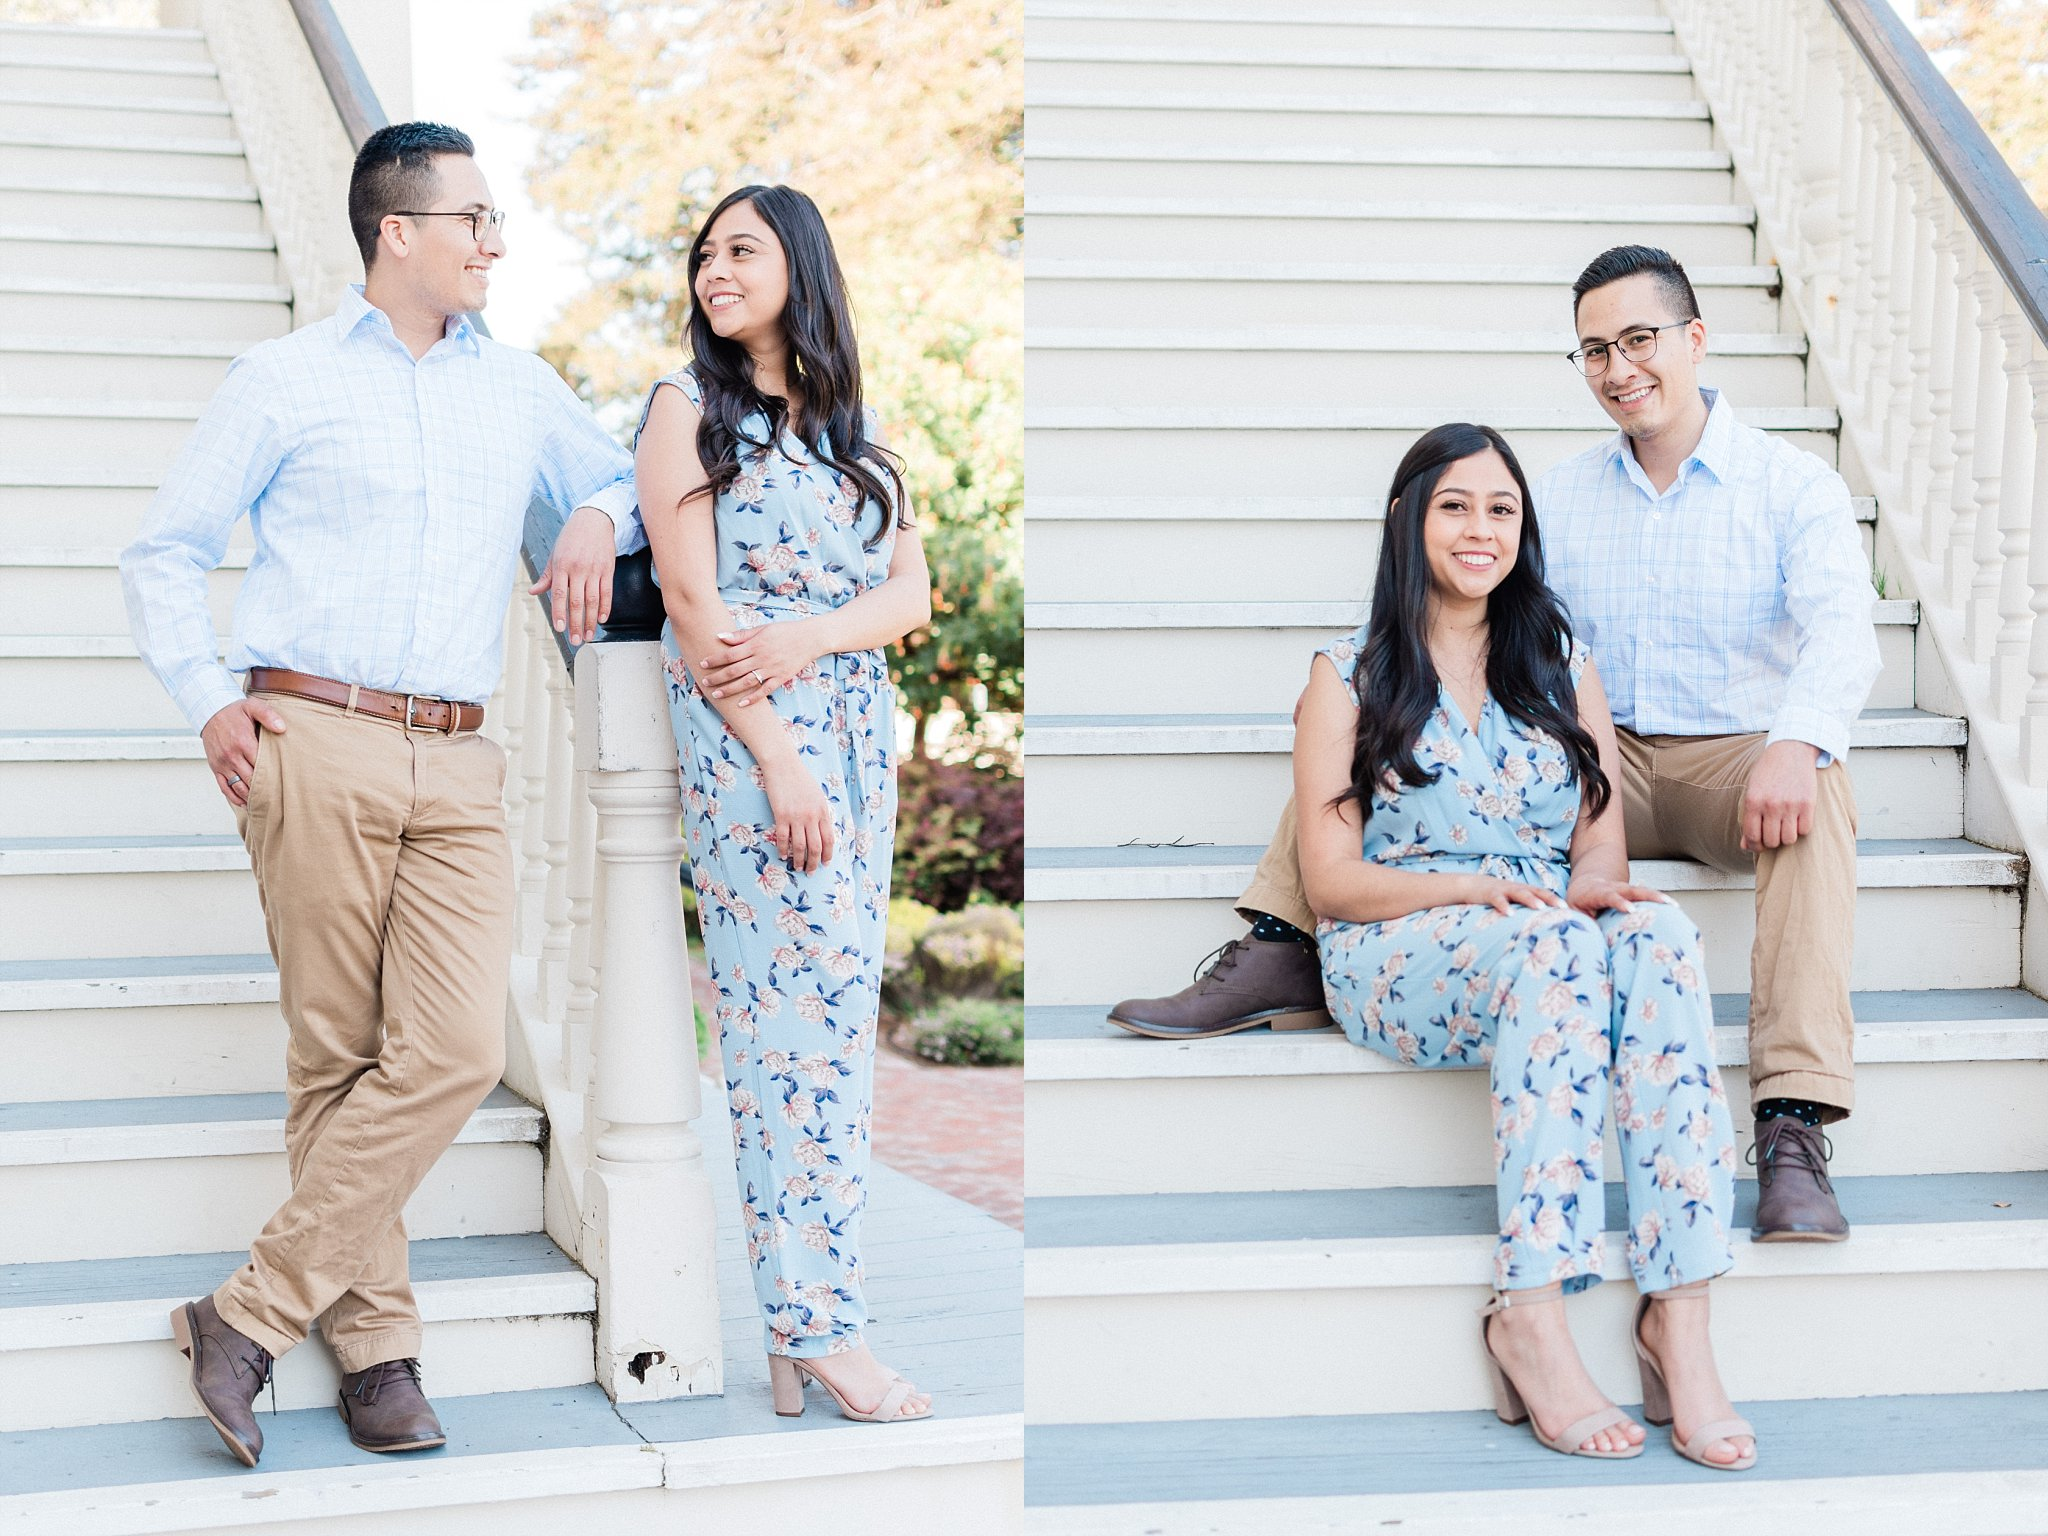 monterey-engagement-photographer-city-hall-drew-zavala-khrystal-chris_0056.jpg